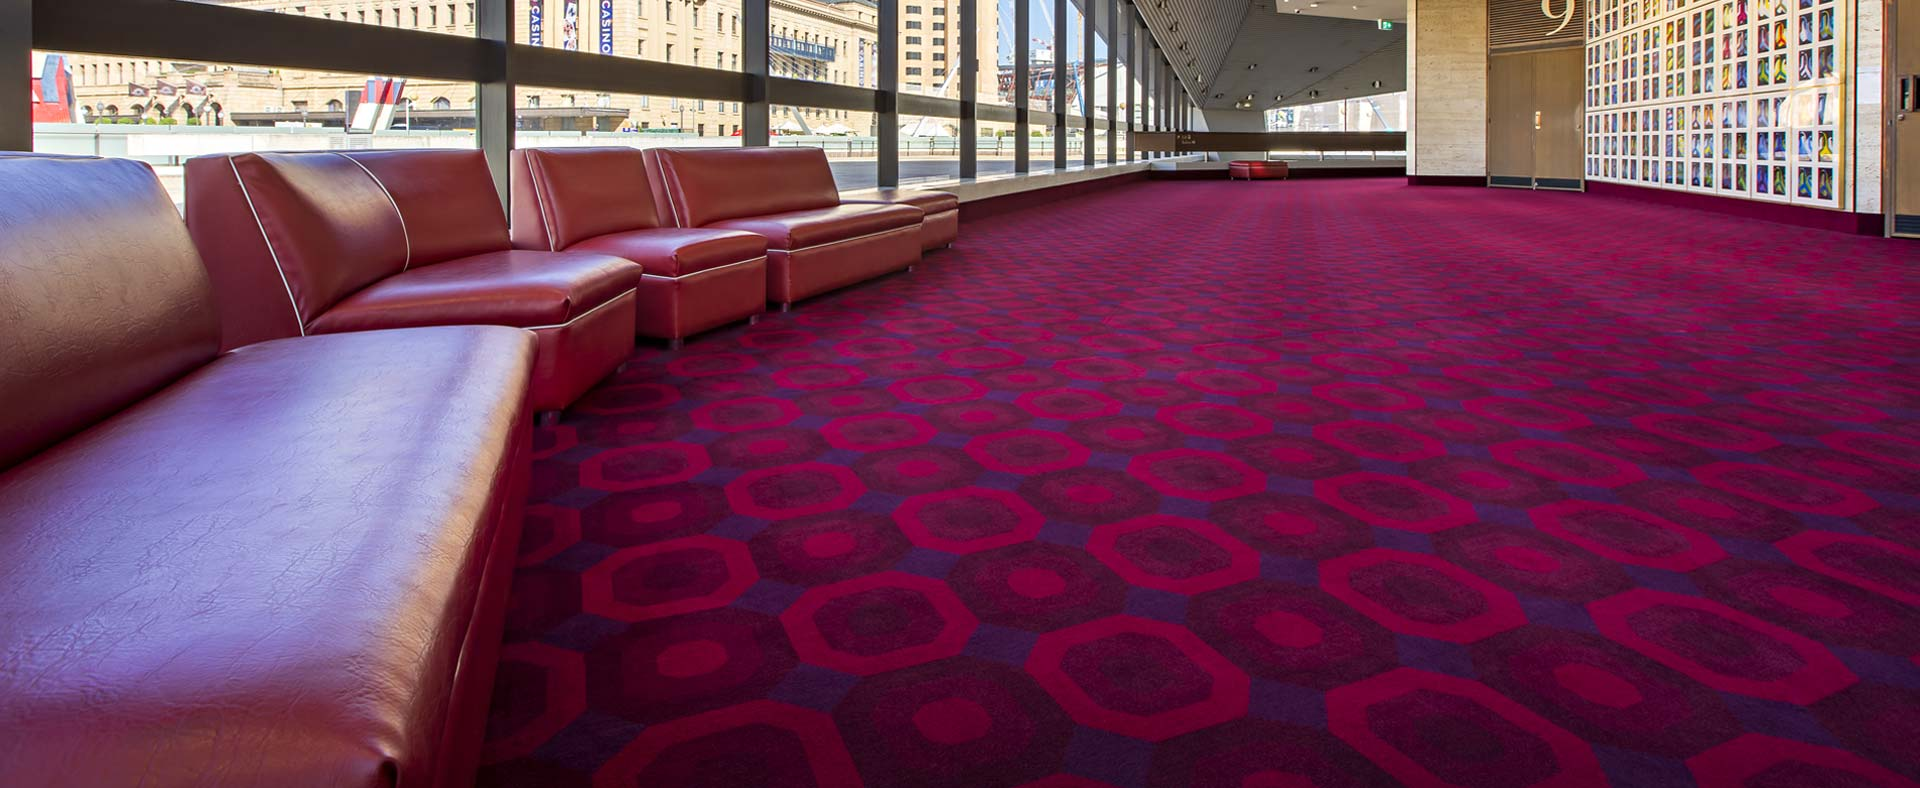 commercial carpets commercial carpet tiles and broadloom | feltex carpets australia JFQRONM